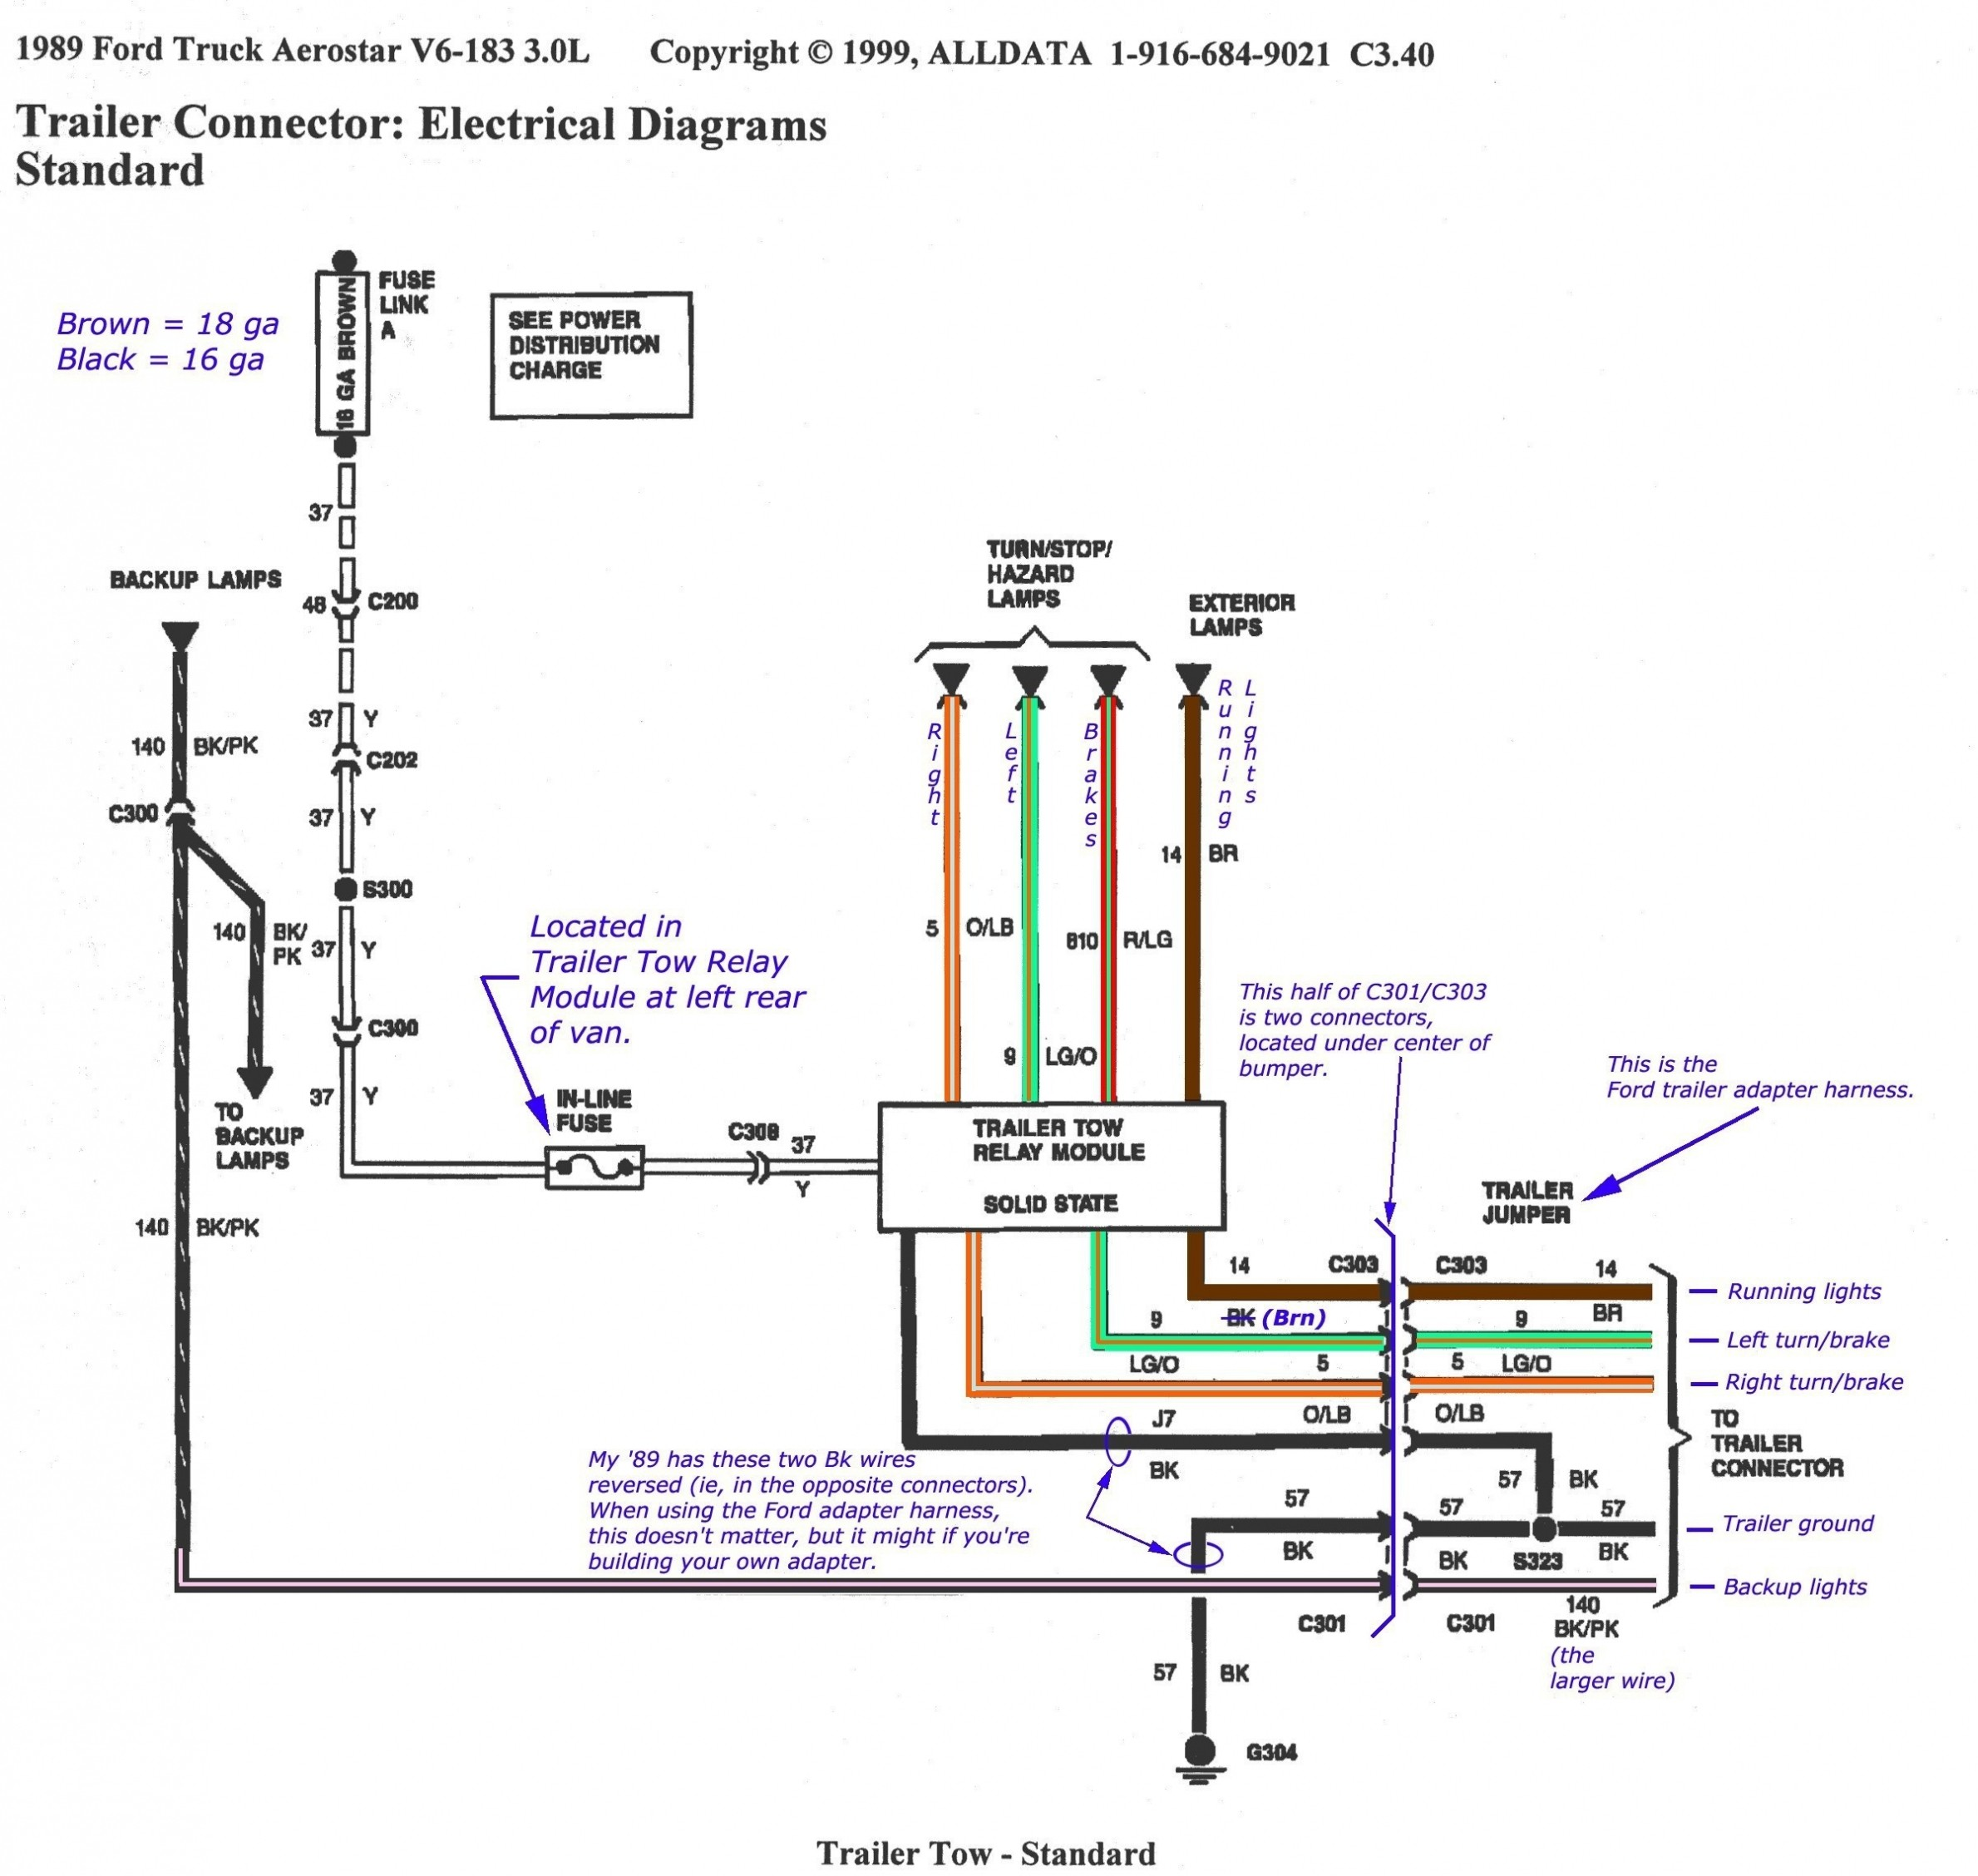 Airstream Solar Wiring Diagram - Electricity Site on smart car diagrams, hvac diagrams, switch diagrams, friendship bracelet diagrams, electronic circuit diagrams, honda motorcycle repair diagrams, electrical diagrams, engine diagrams, internet of things diagrams, sincgars radio configurations diagrams, transformer diagrams, troubleshooting diagrams, battery diagrams, series and parallel circuits diagrams, led circuit diagrams, lighting diagrams, gmc fuse box diagrams, pinout diagrams, motor diagrams,